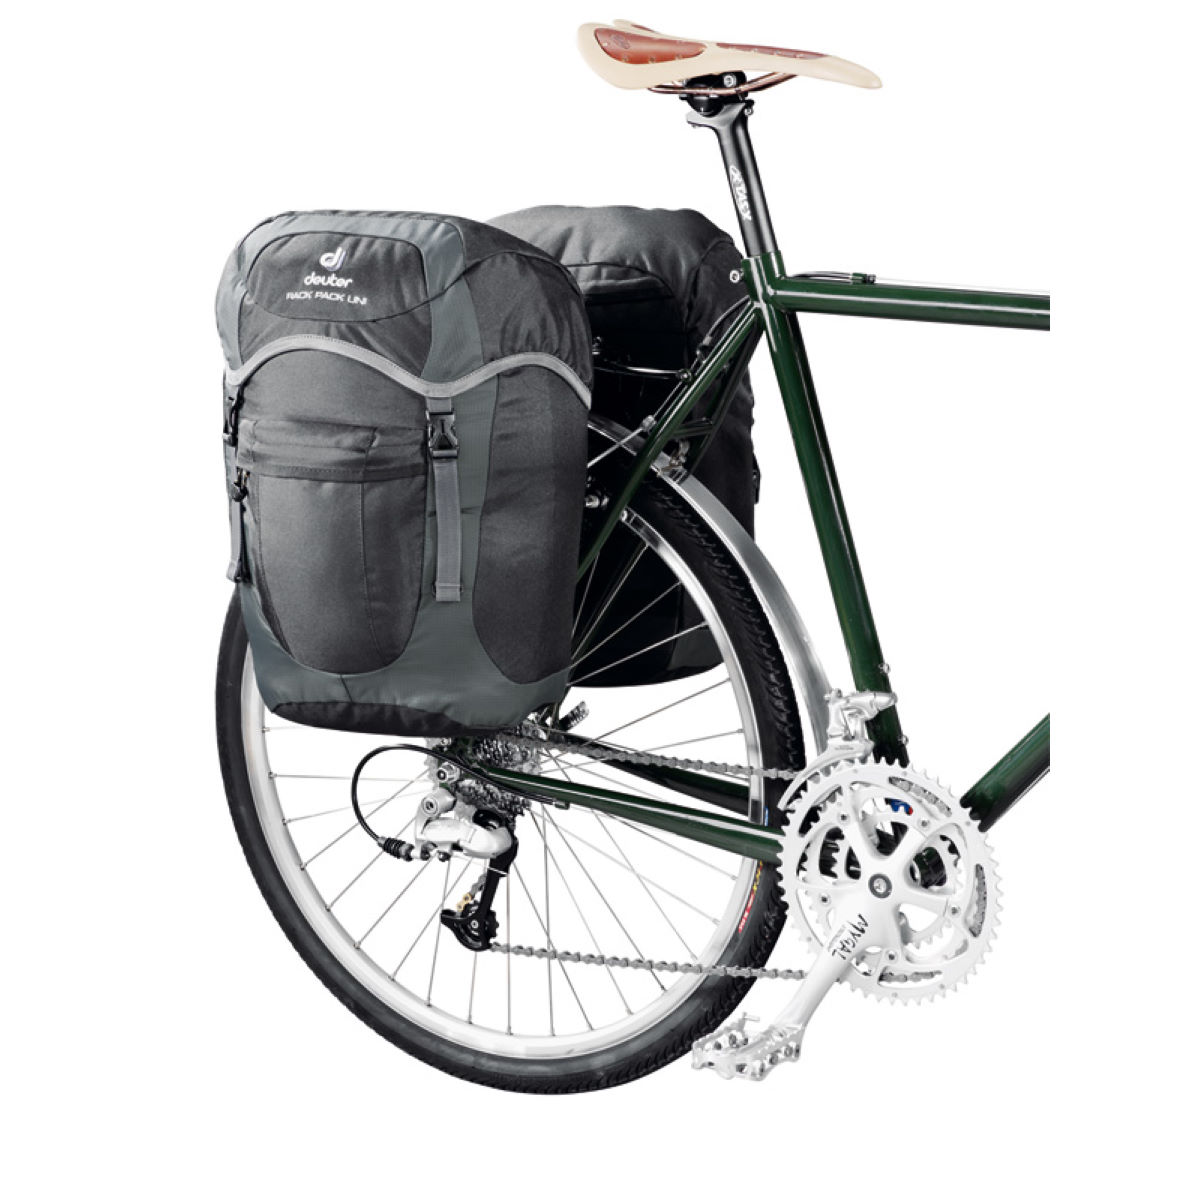 Deuter Rack Pack Uni Panniers